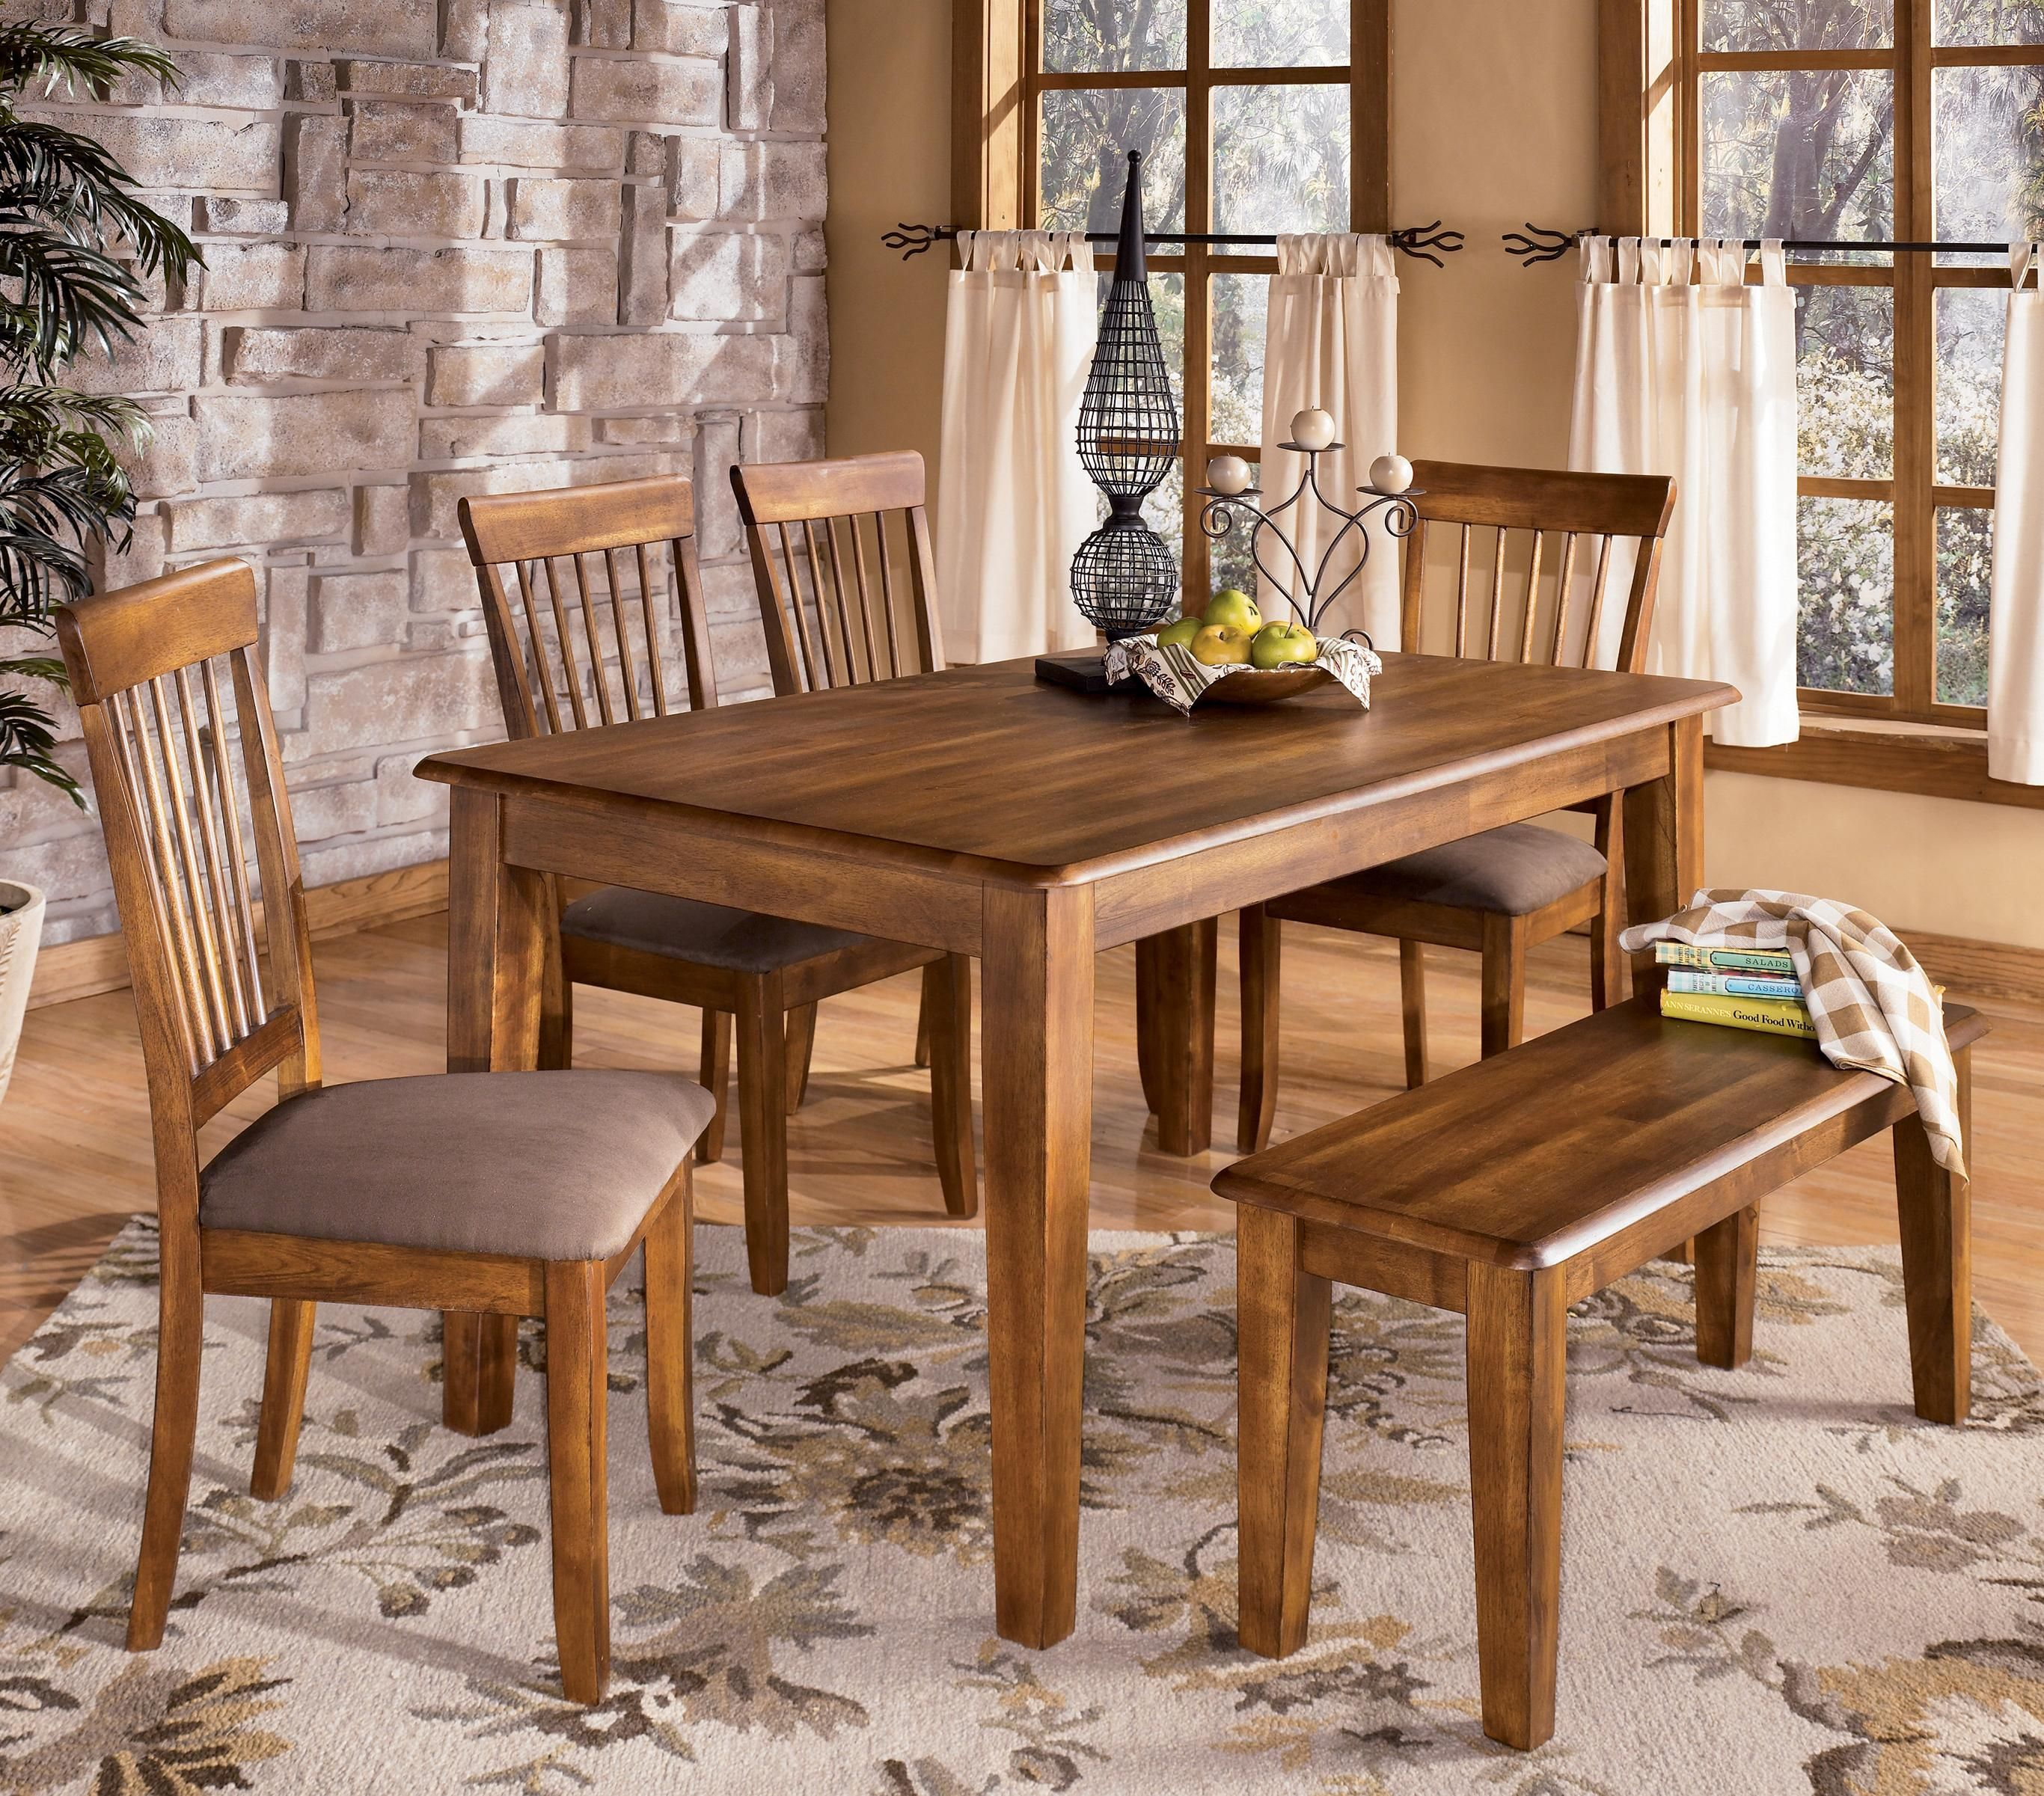 Berringer 36 x 60 table with 4 chairs home decor for Dining room table 60 x 36